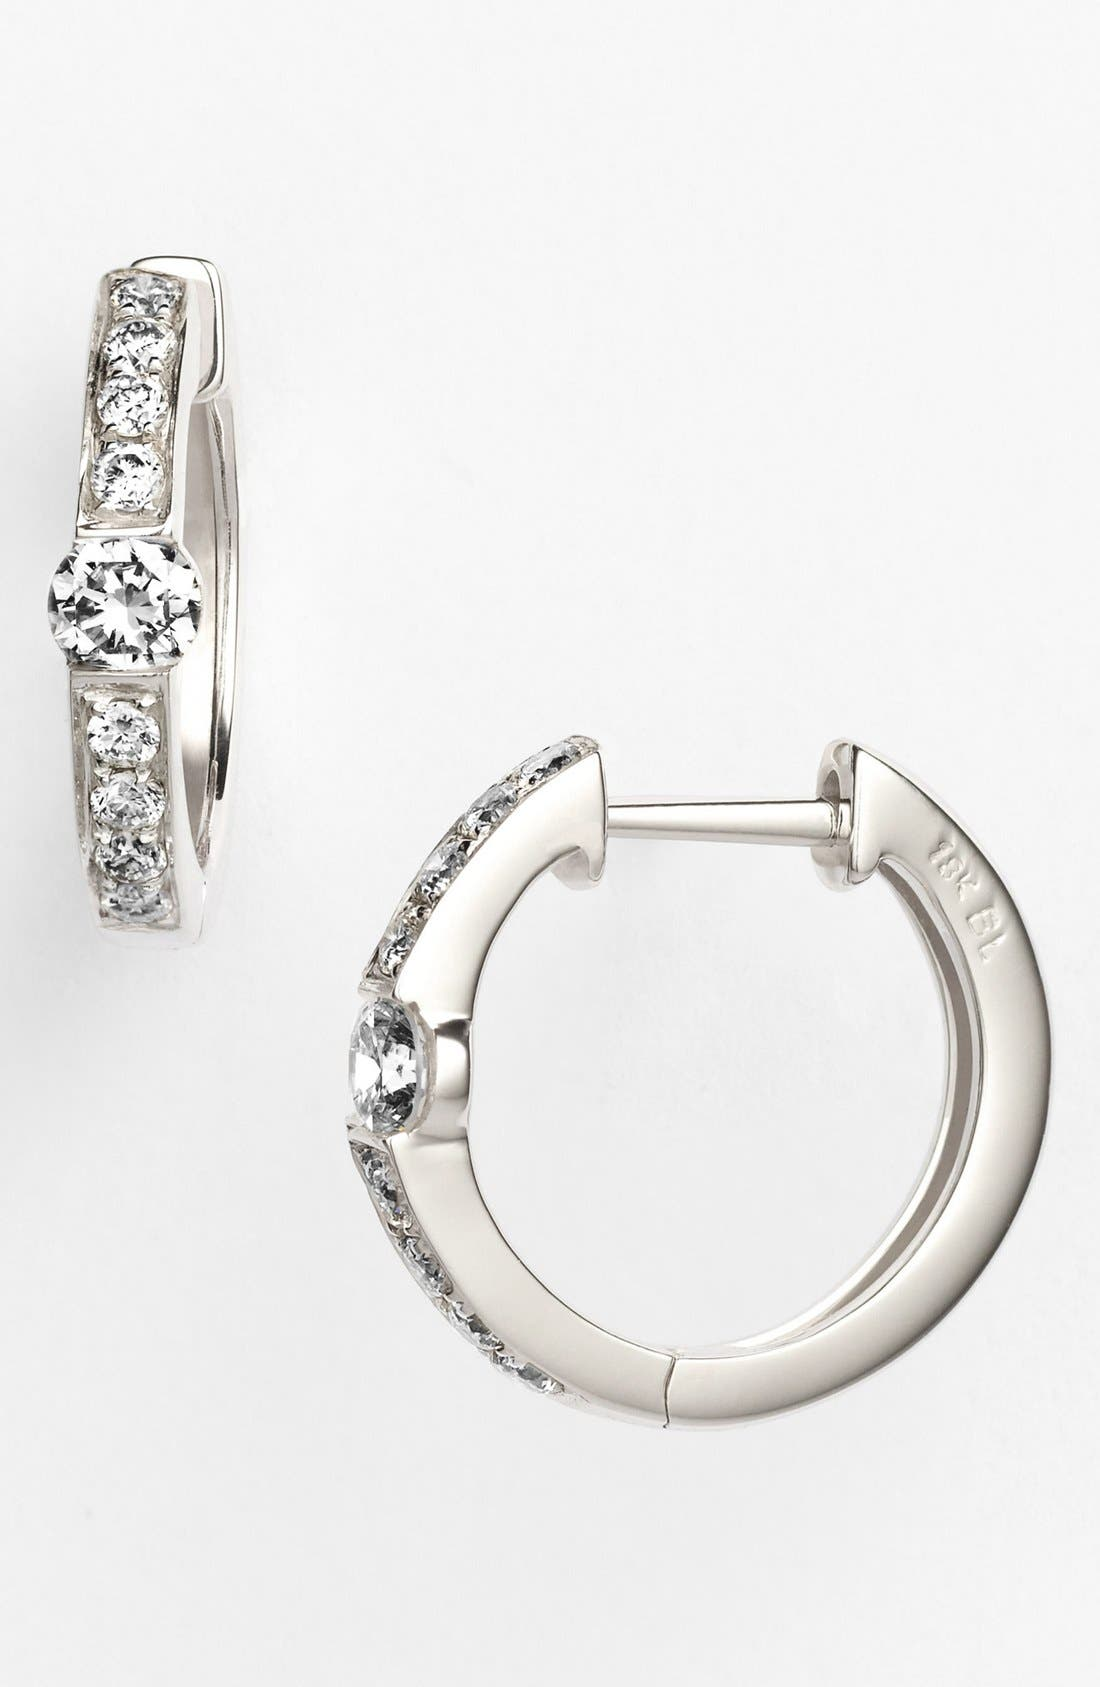 Alternate Image 1 Selected - Bony Levy 'Linea' Small Diamond Hoop Earrings (Nordstrom Exclusive)